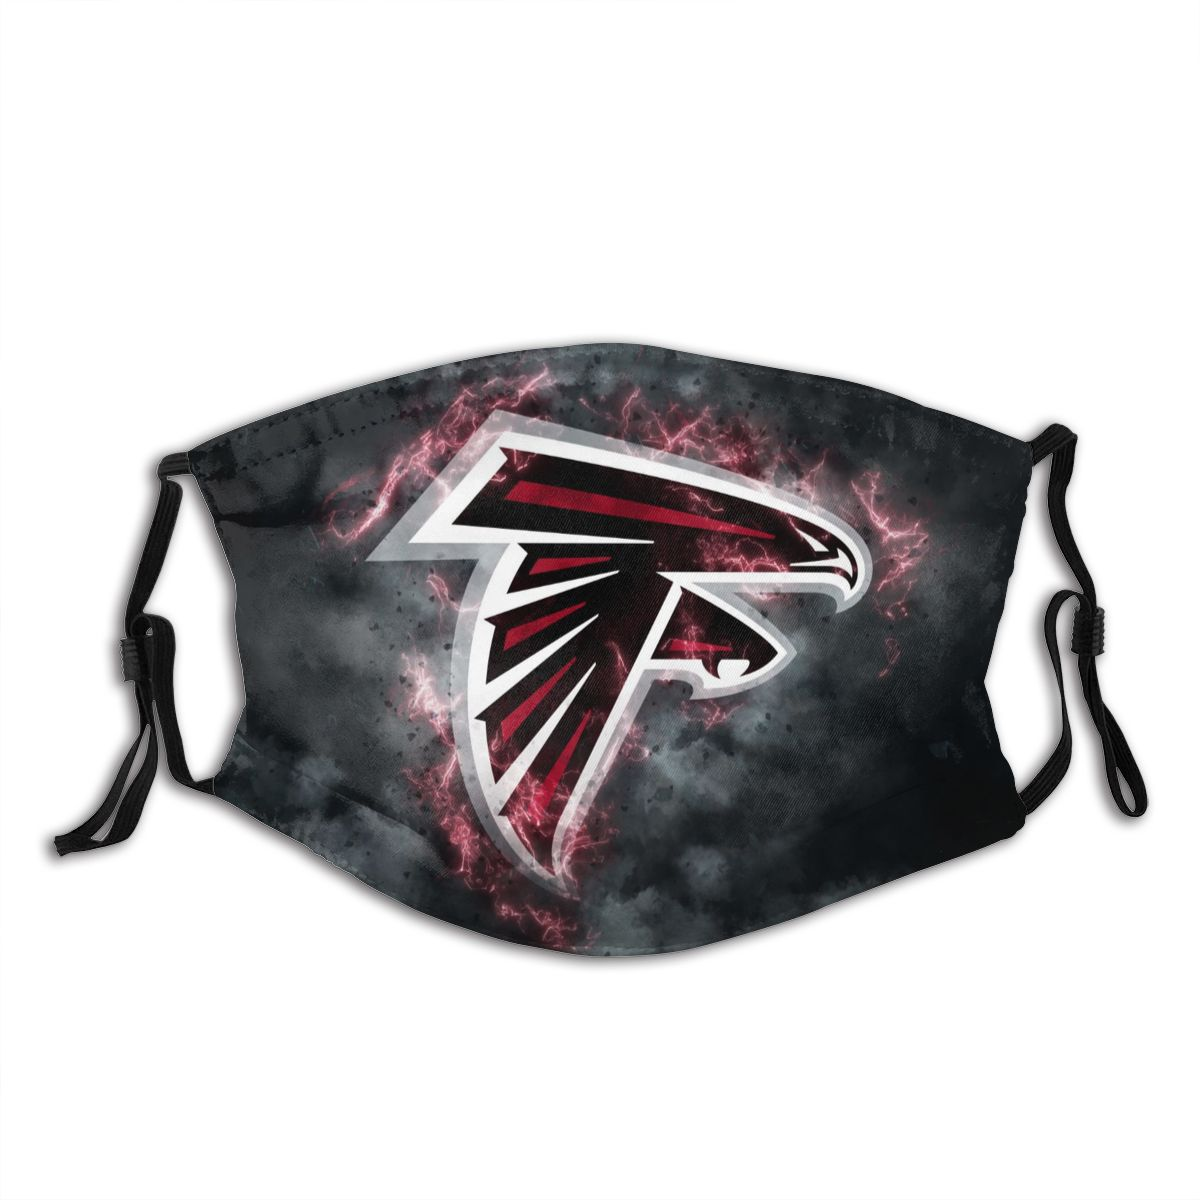 Falcons Illustration Art Adult Cloth Face Covering With Filter